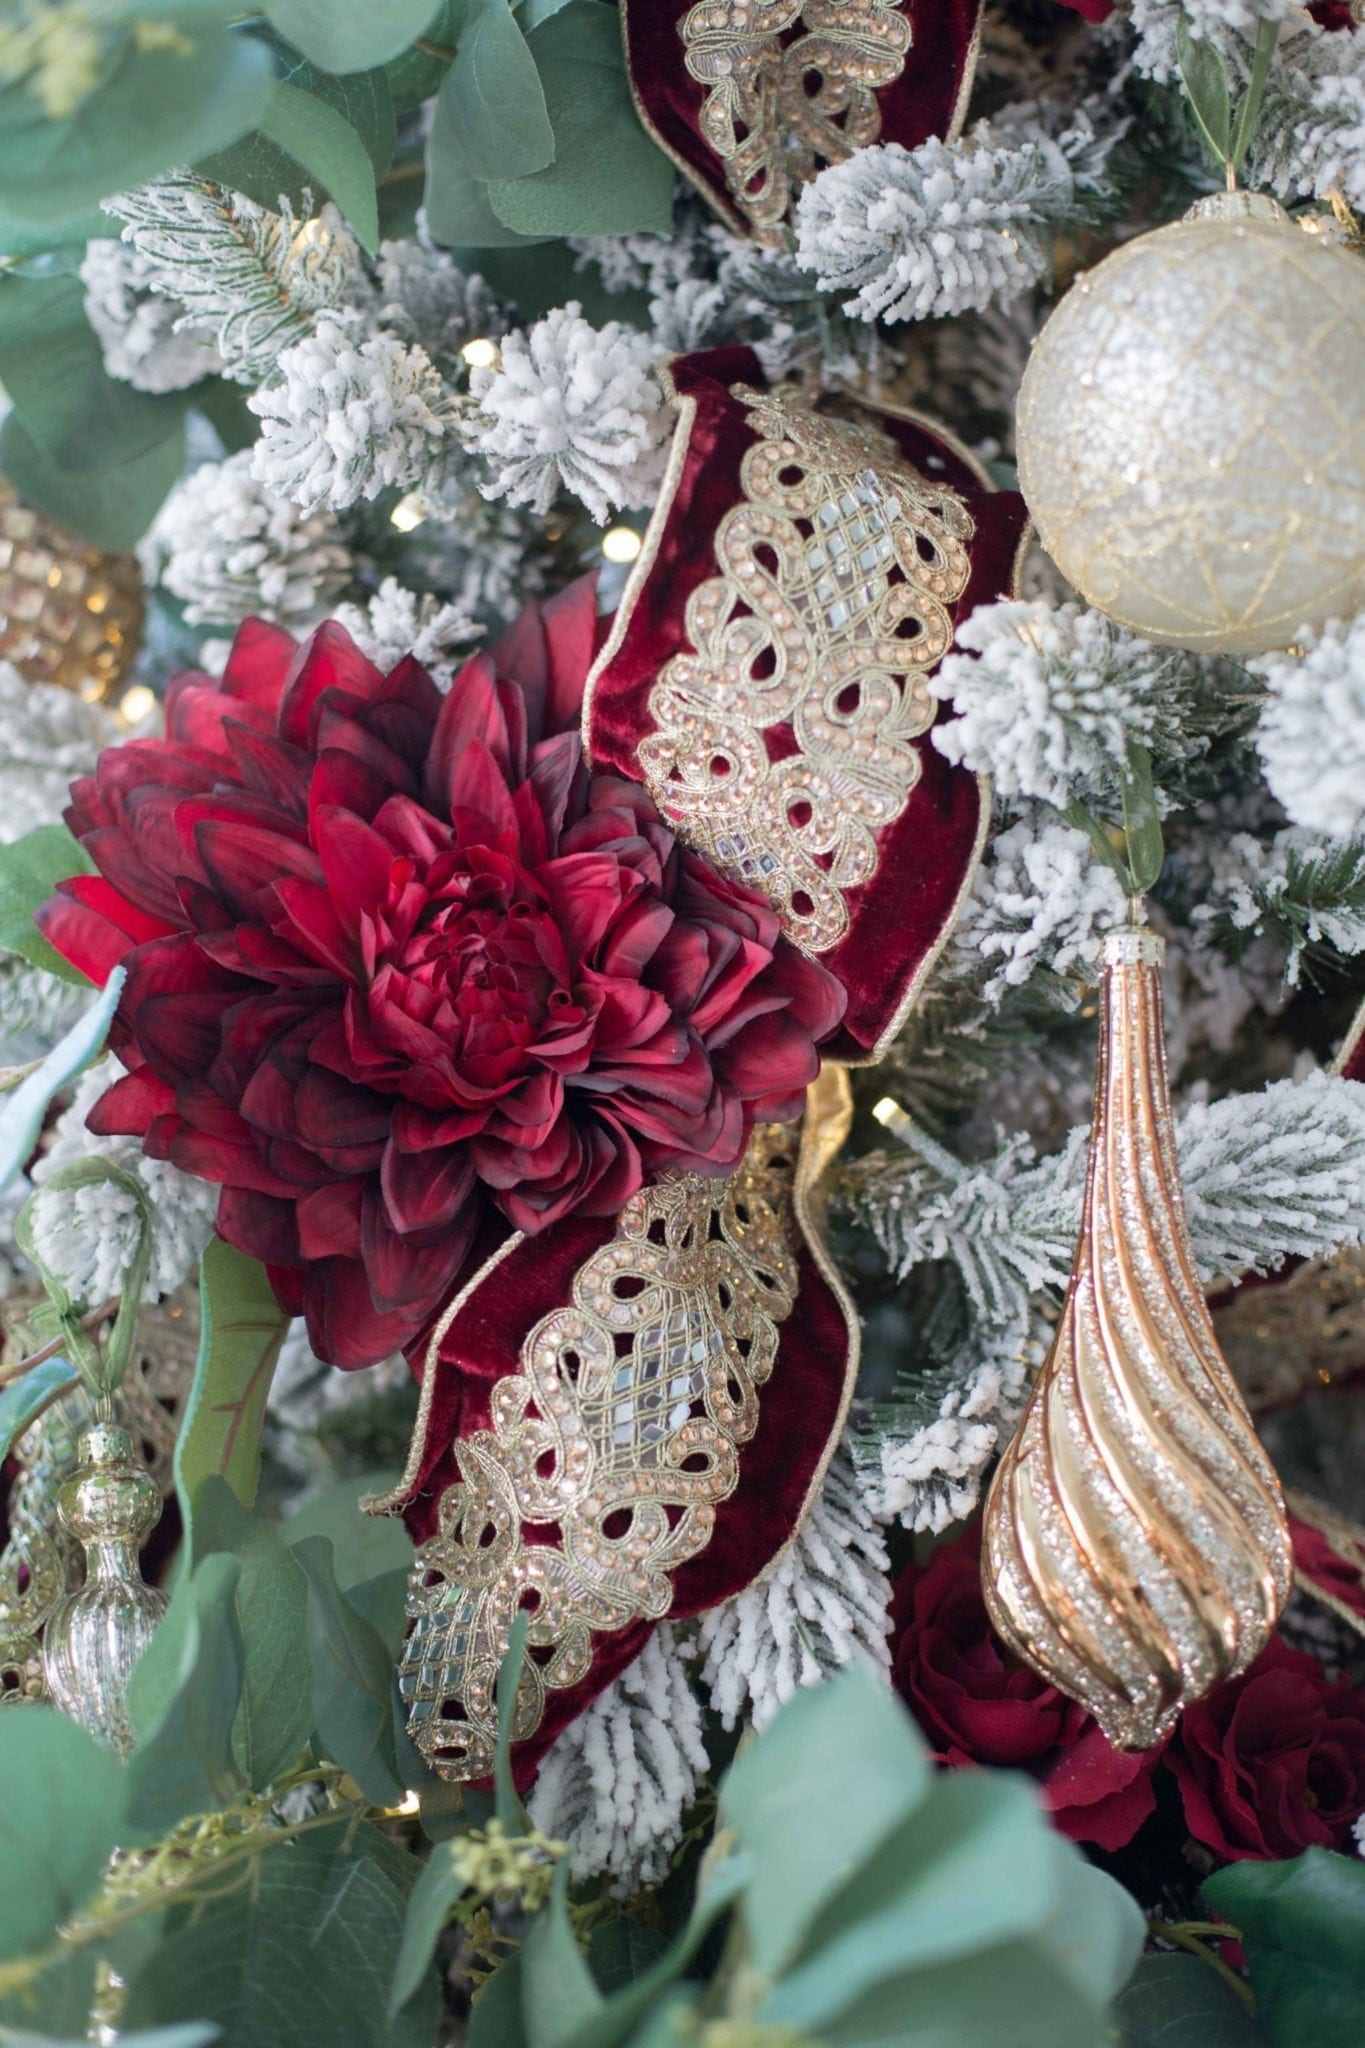 Frontgate Ornaments 2018. Gold and gray ornament sets for Christmas tree decorated in red and gold.